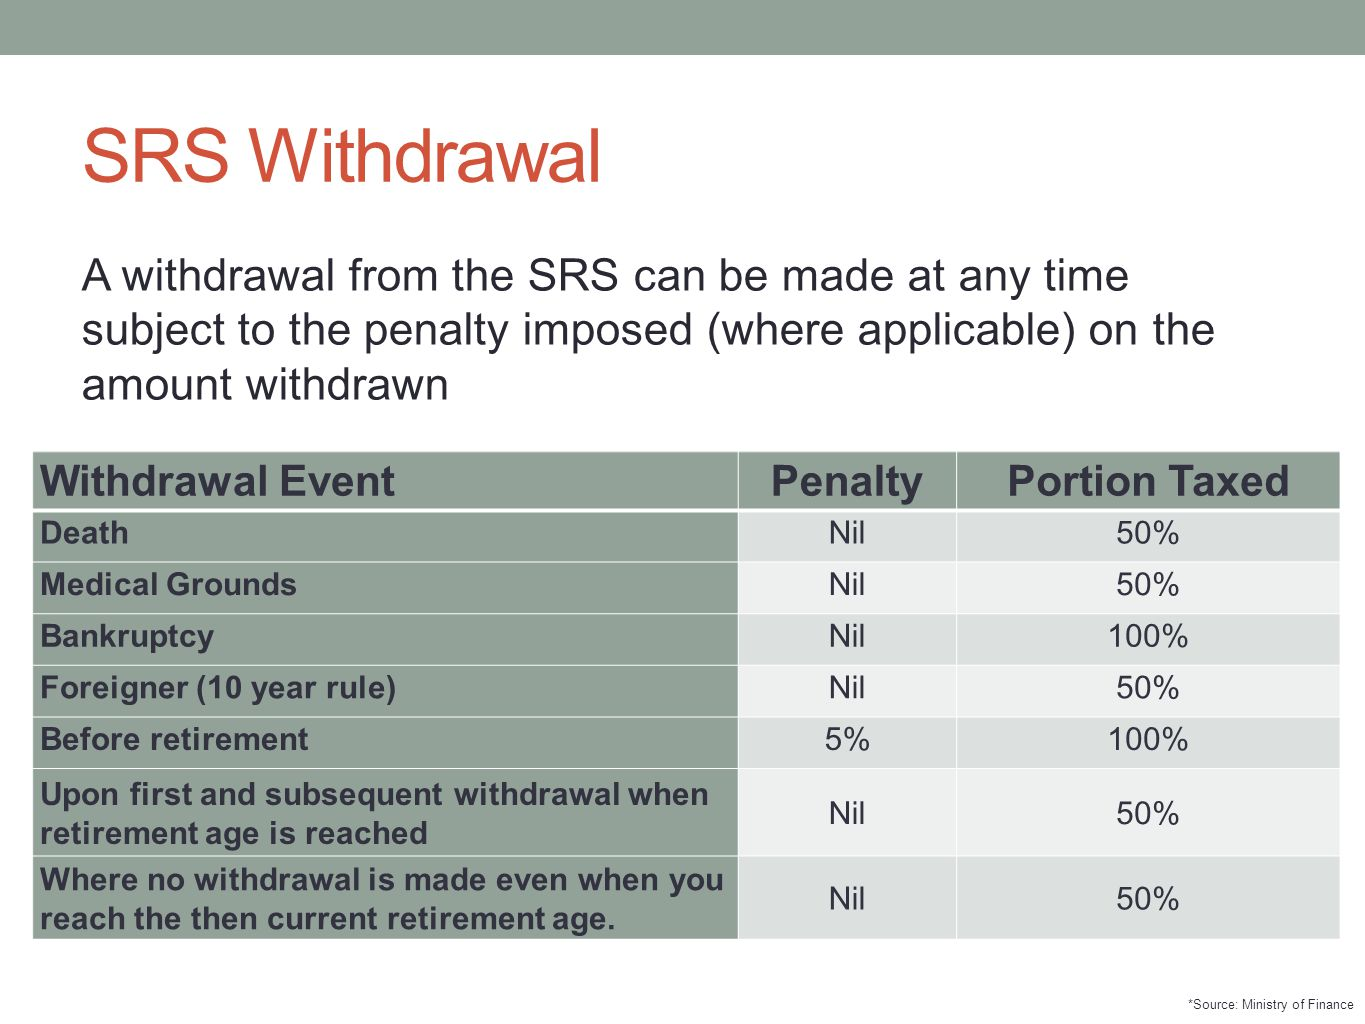 SRS Withdrawal A withdrawal from the SRS can be made at any time subject to the penalty imposed (where applicable) on the amount withdrawn.